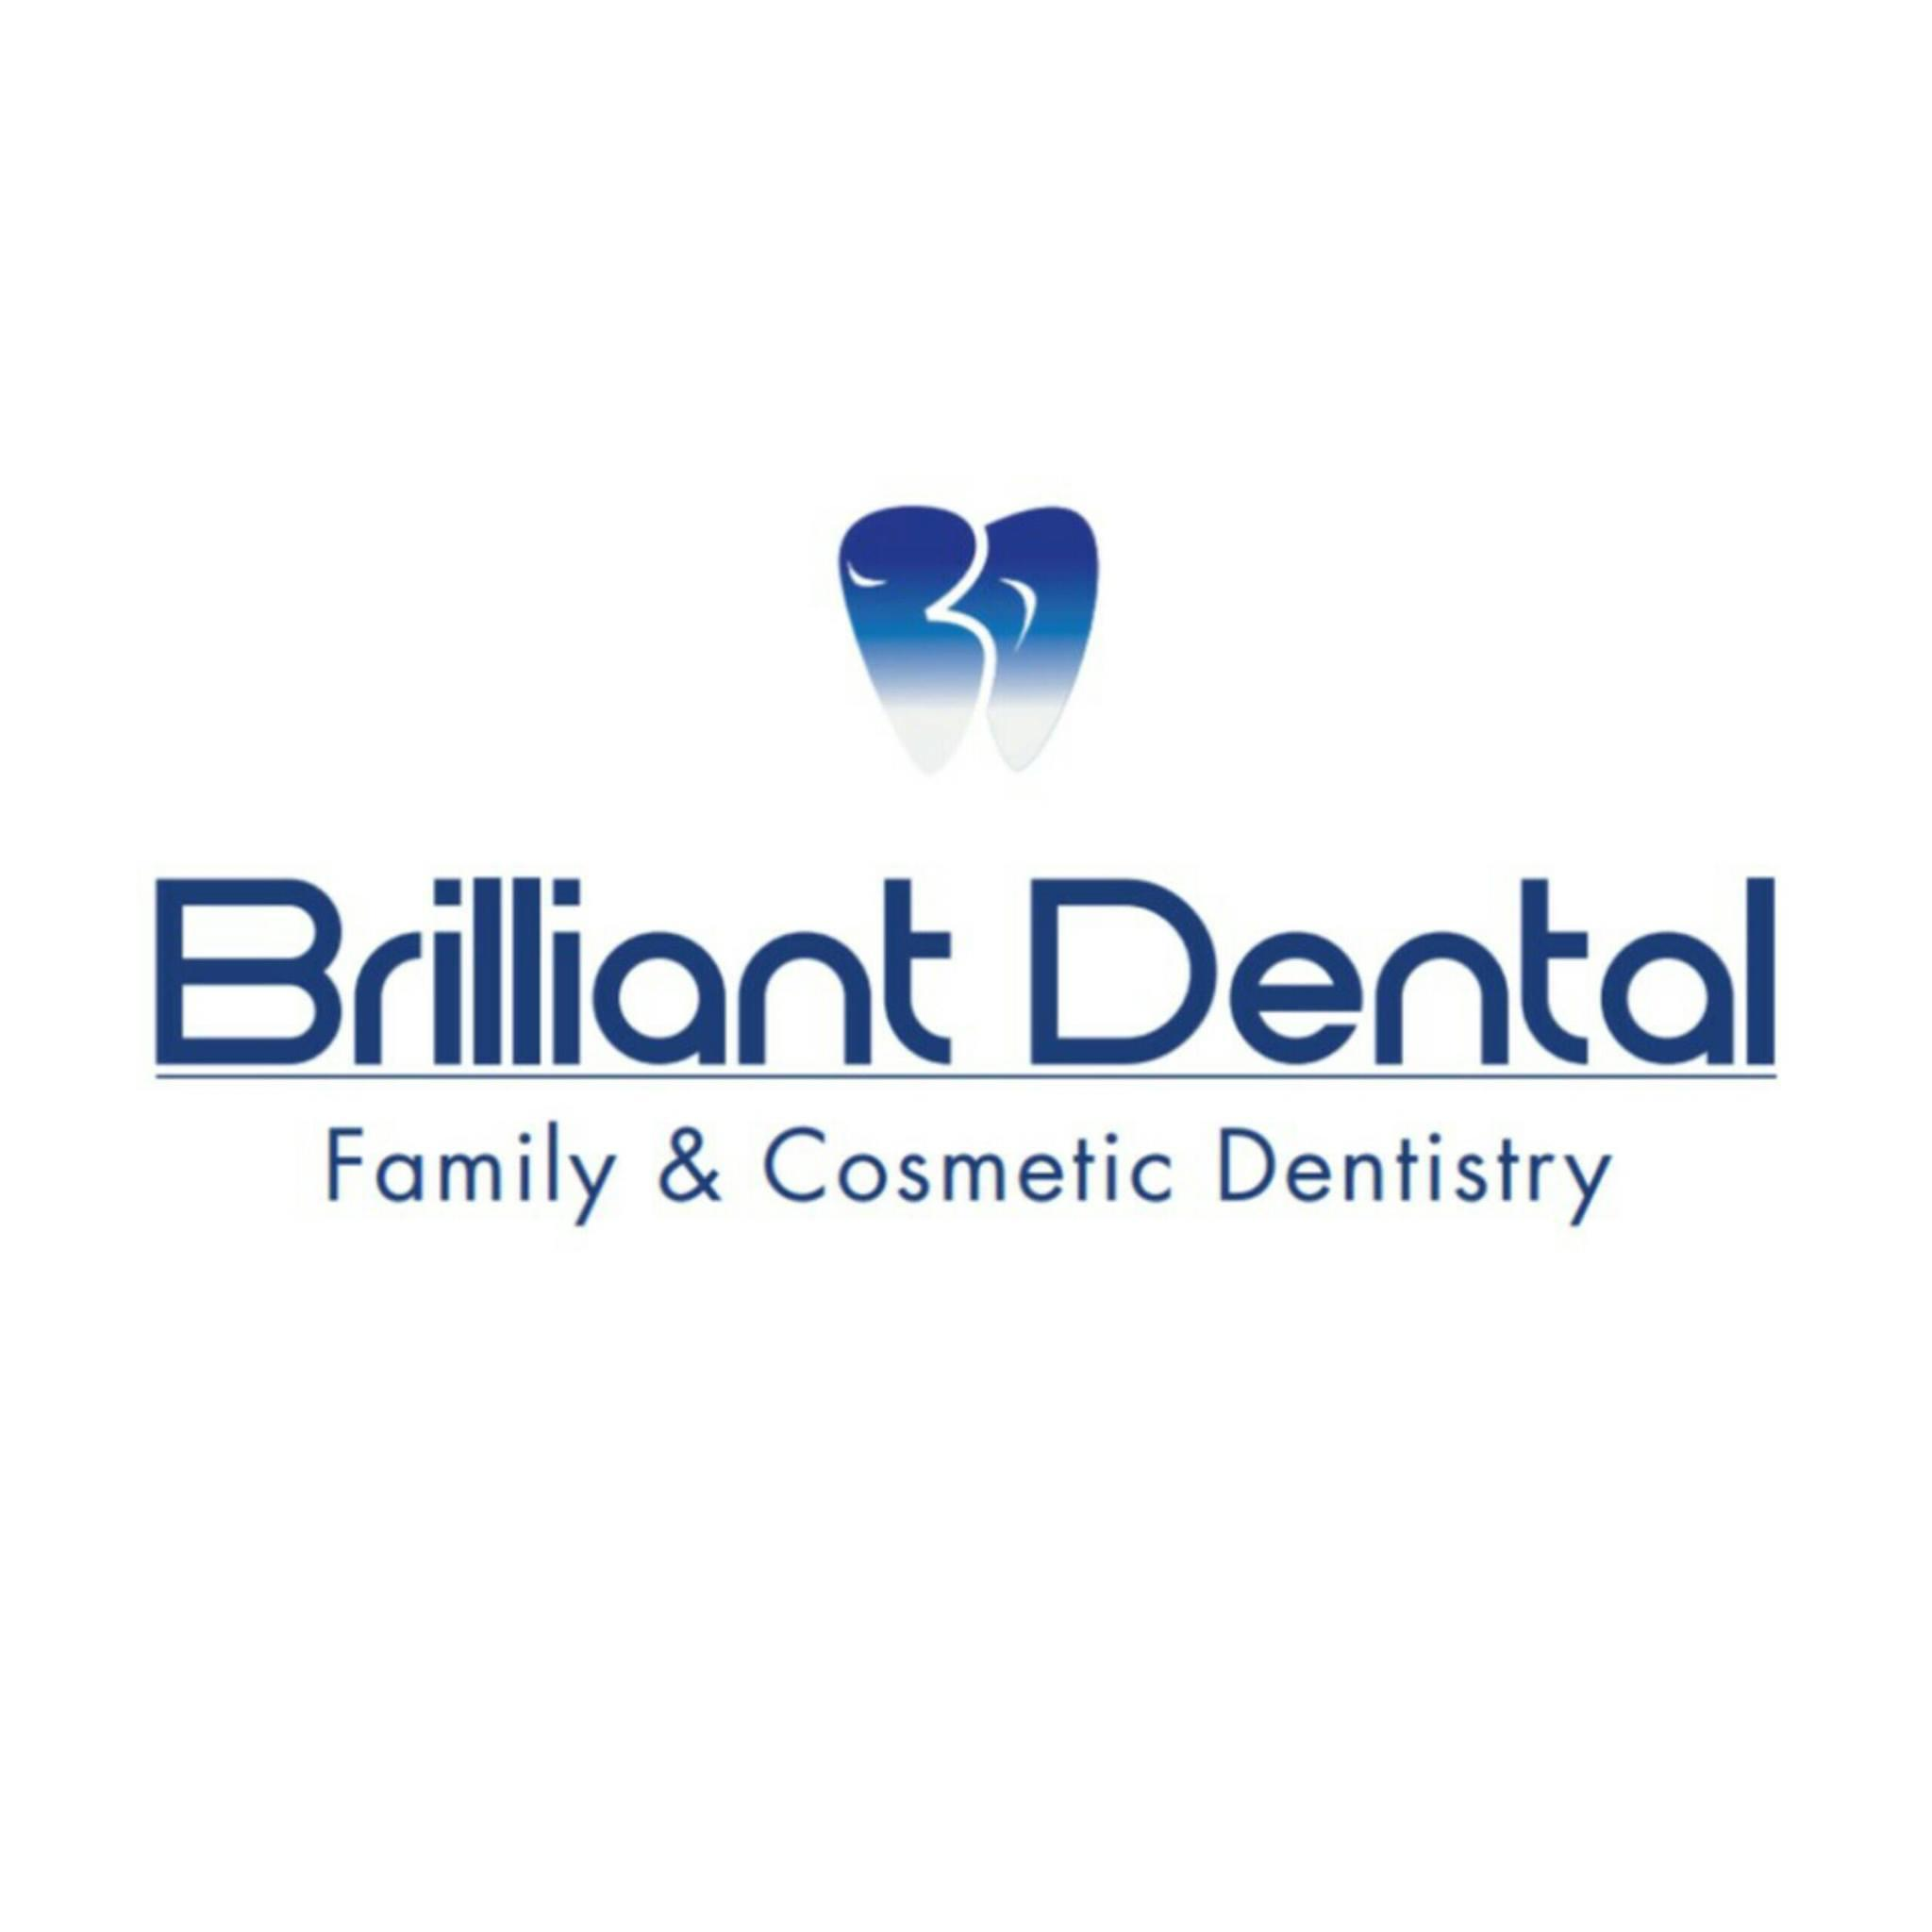 Brilliant Dental Family and Cosmetic Dentistry & Dental Implants